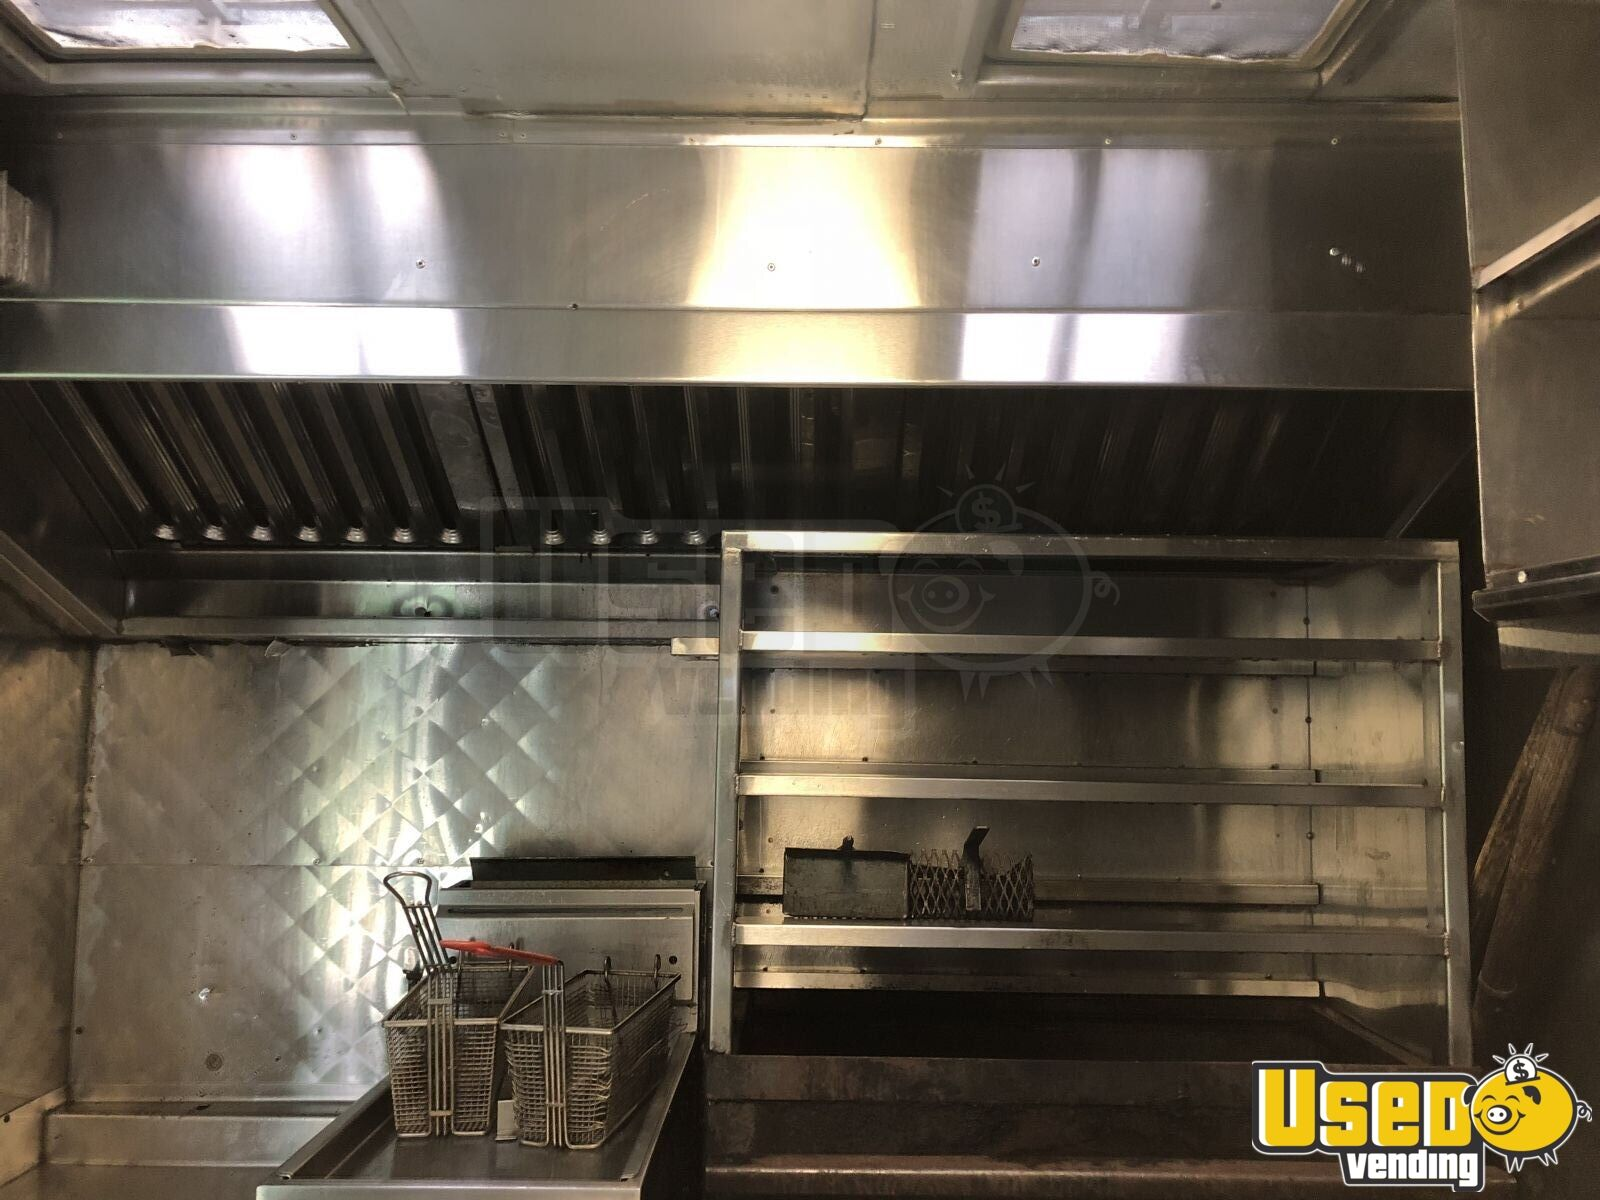 1981 Ford All-purpose Food Truck Fryer Texas Gas Engine for Sale - 11